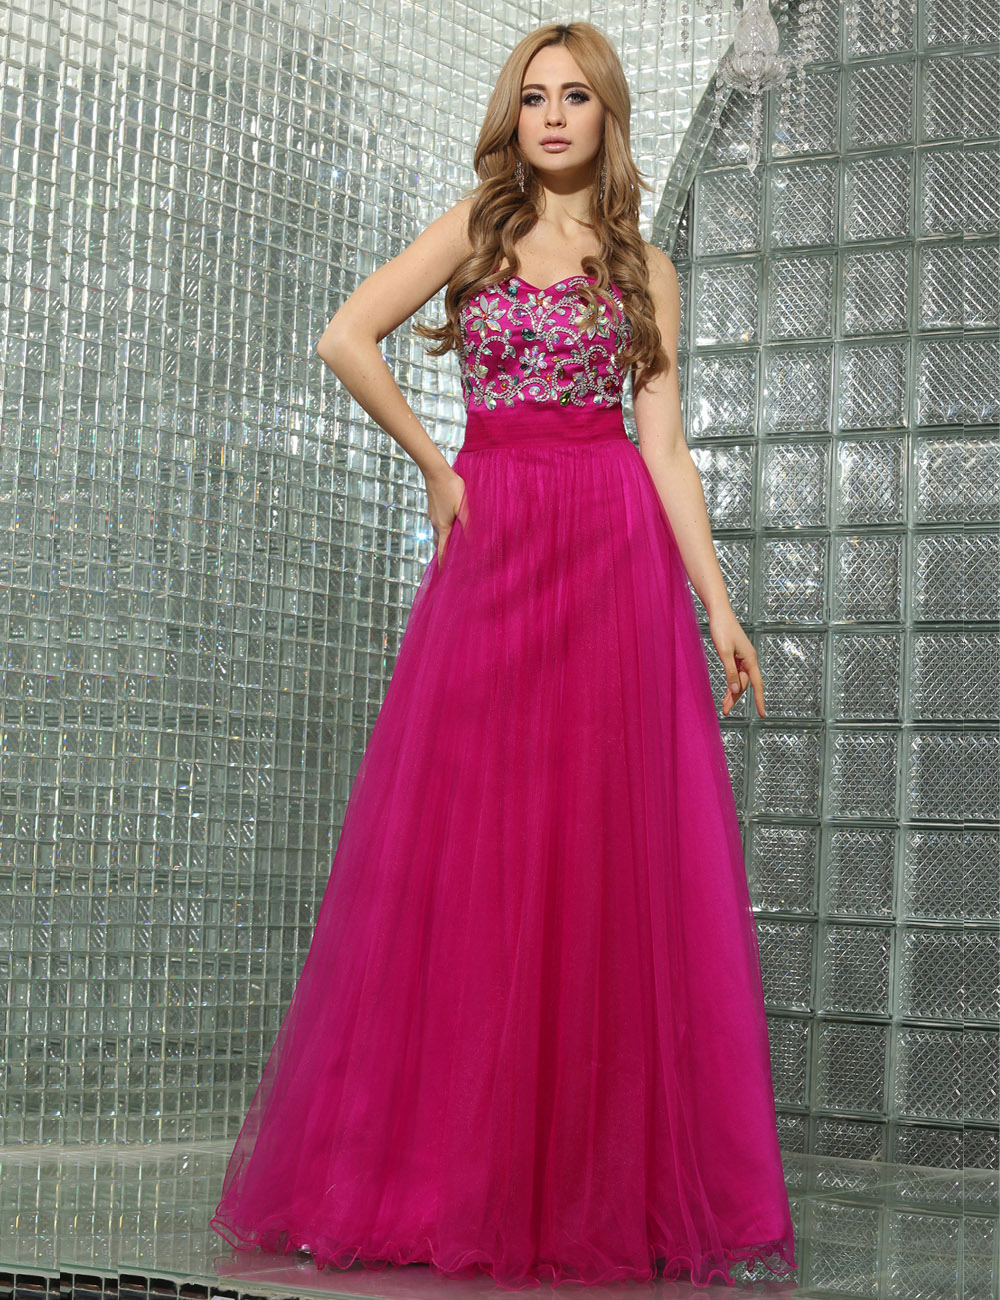 Sheath/Column Strapless Short/Mini Chiffon Prom Dress